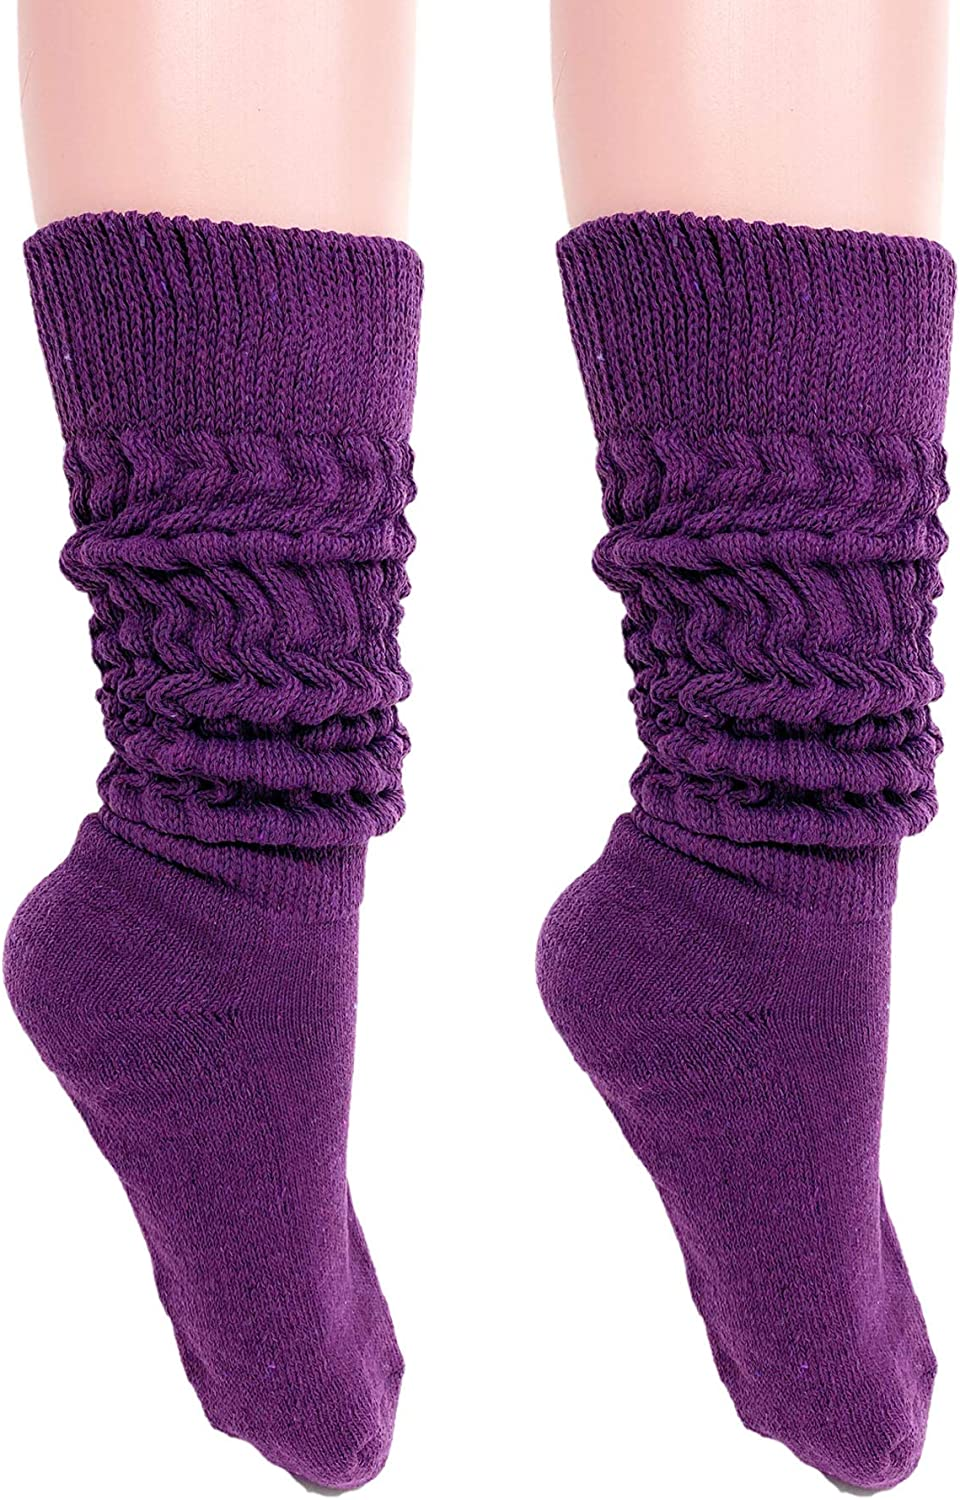 Slouch Socks Women and Men Extra Tall Heavy Cotton Socks Size 9 to 11